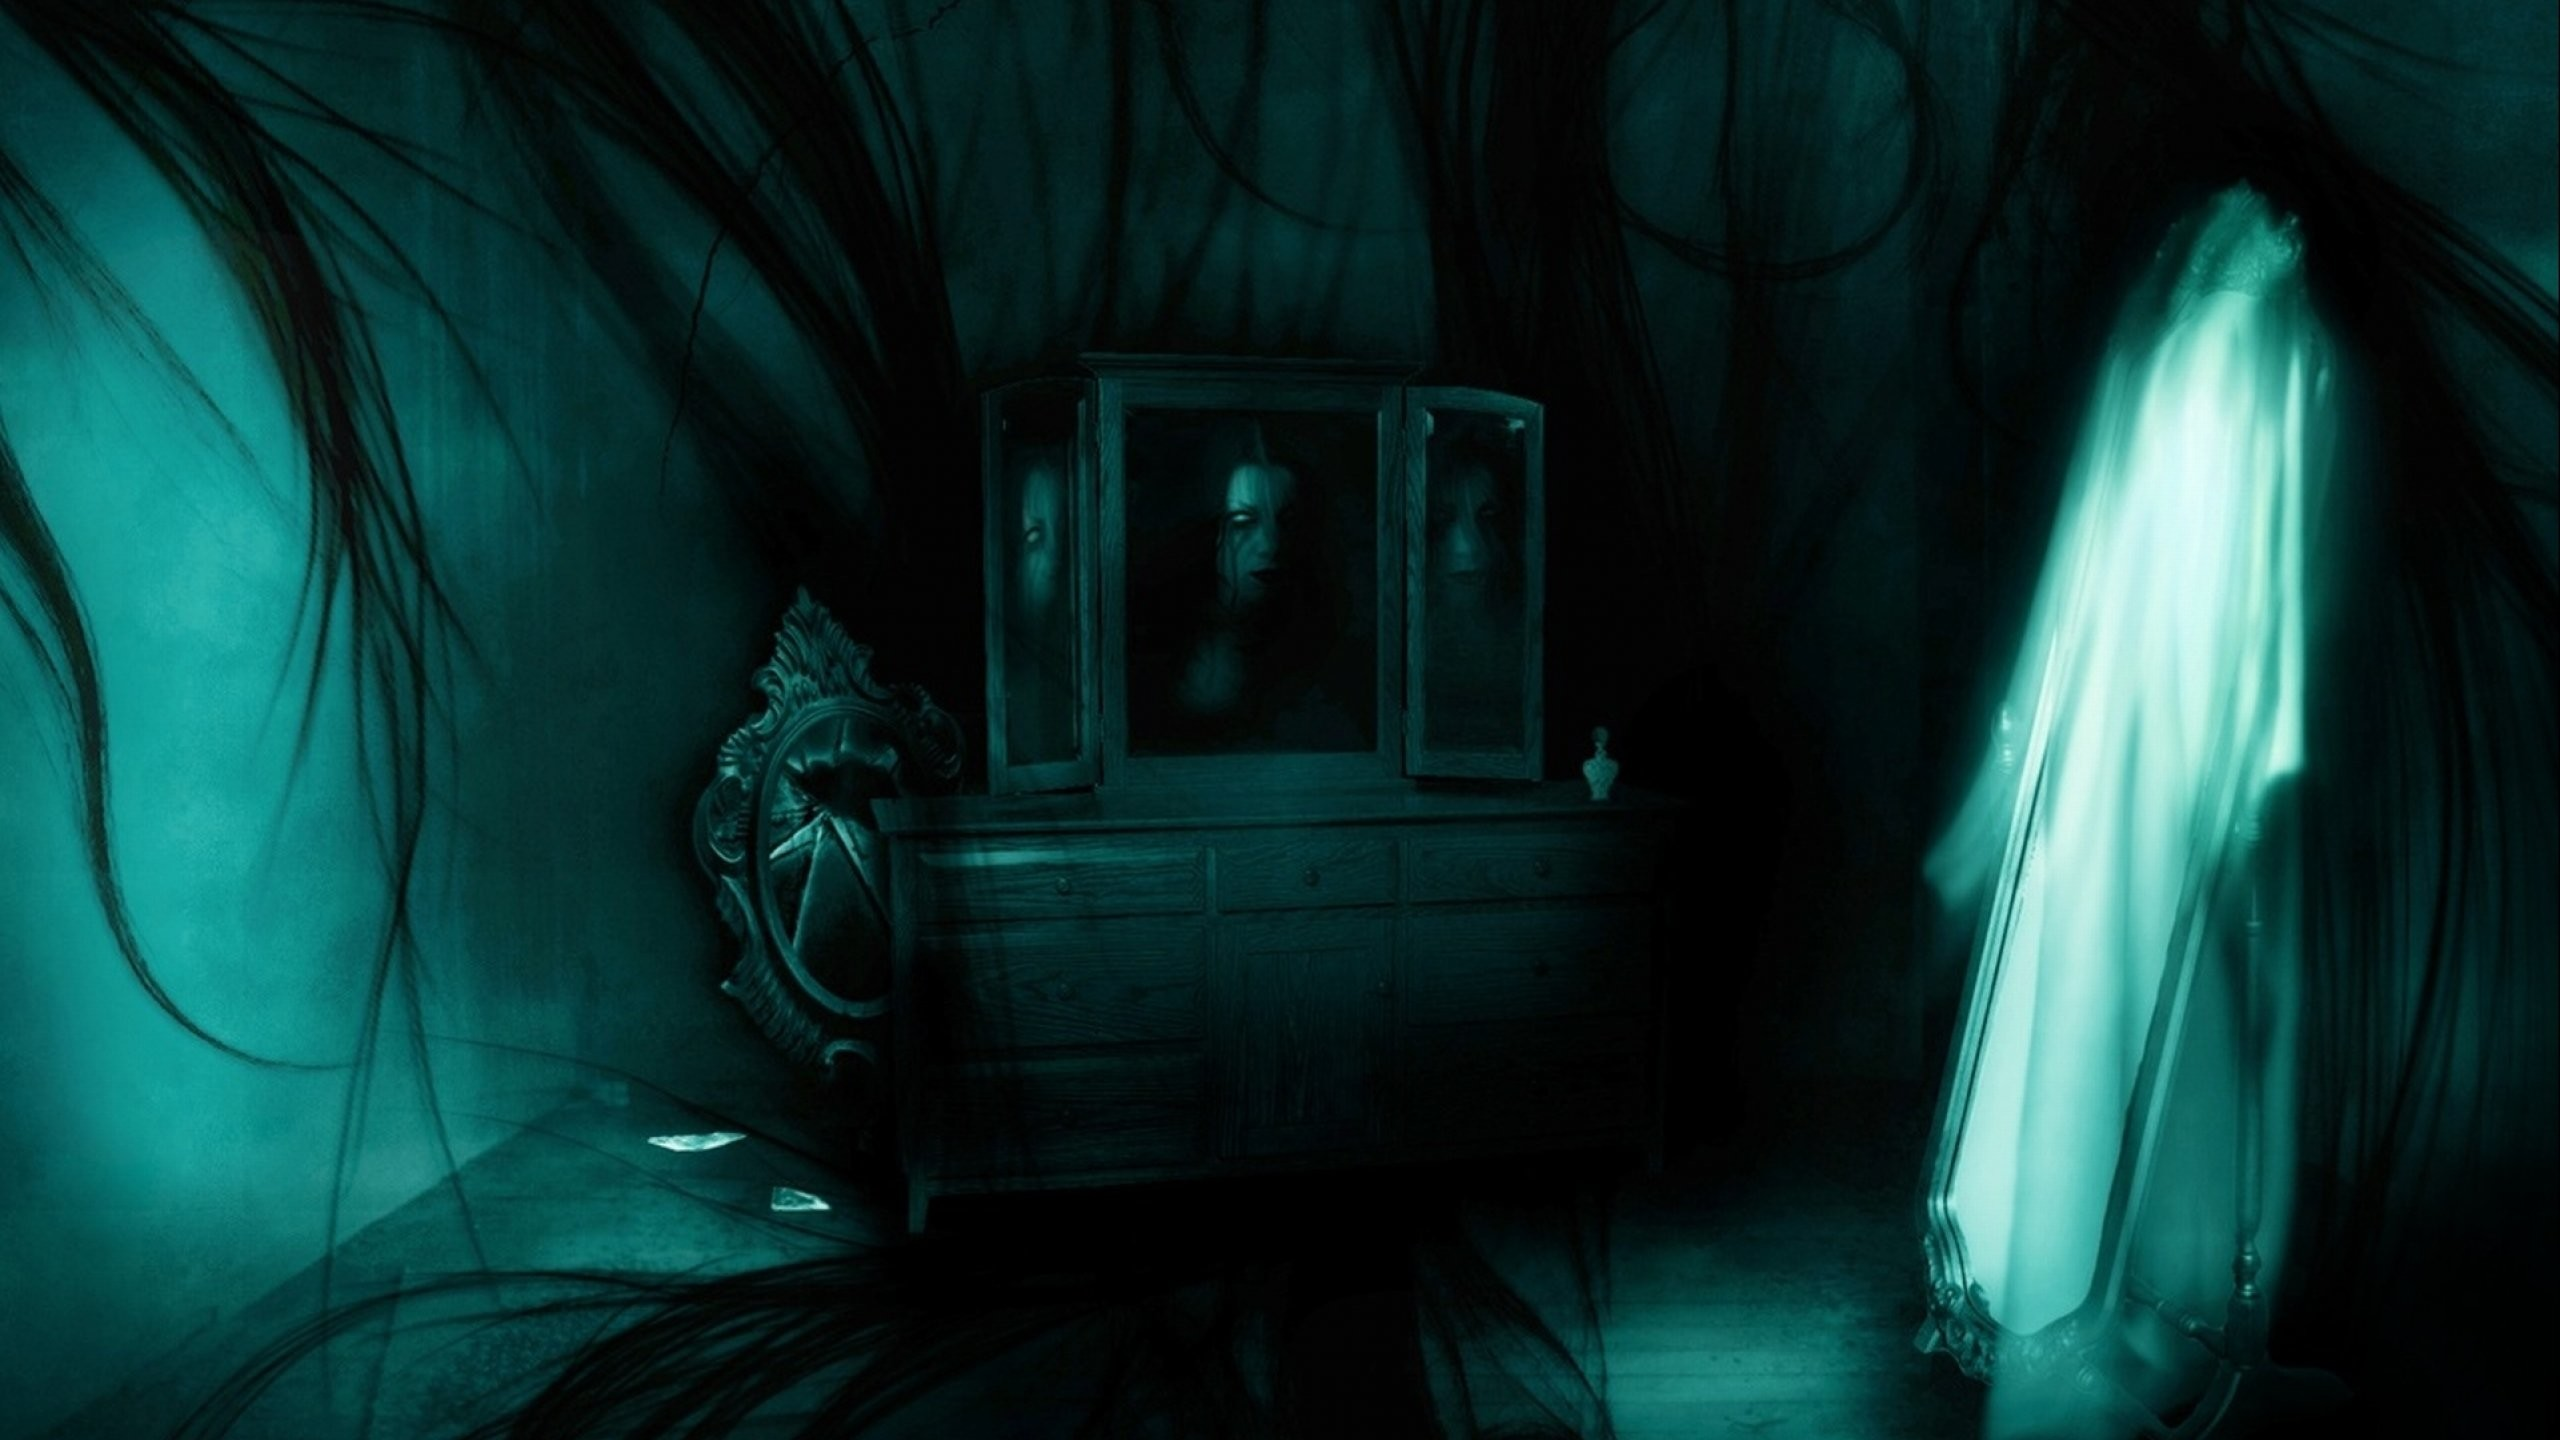 2560x1440 dark-ghost-fantasy-art-artwork-horror-spooky-creepy-halloween-gothic- wallpaper-1.jpg (2560×1440) | cool stuff | Pinterest | Creepy ghost, 3d  wallpaper and ...